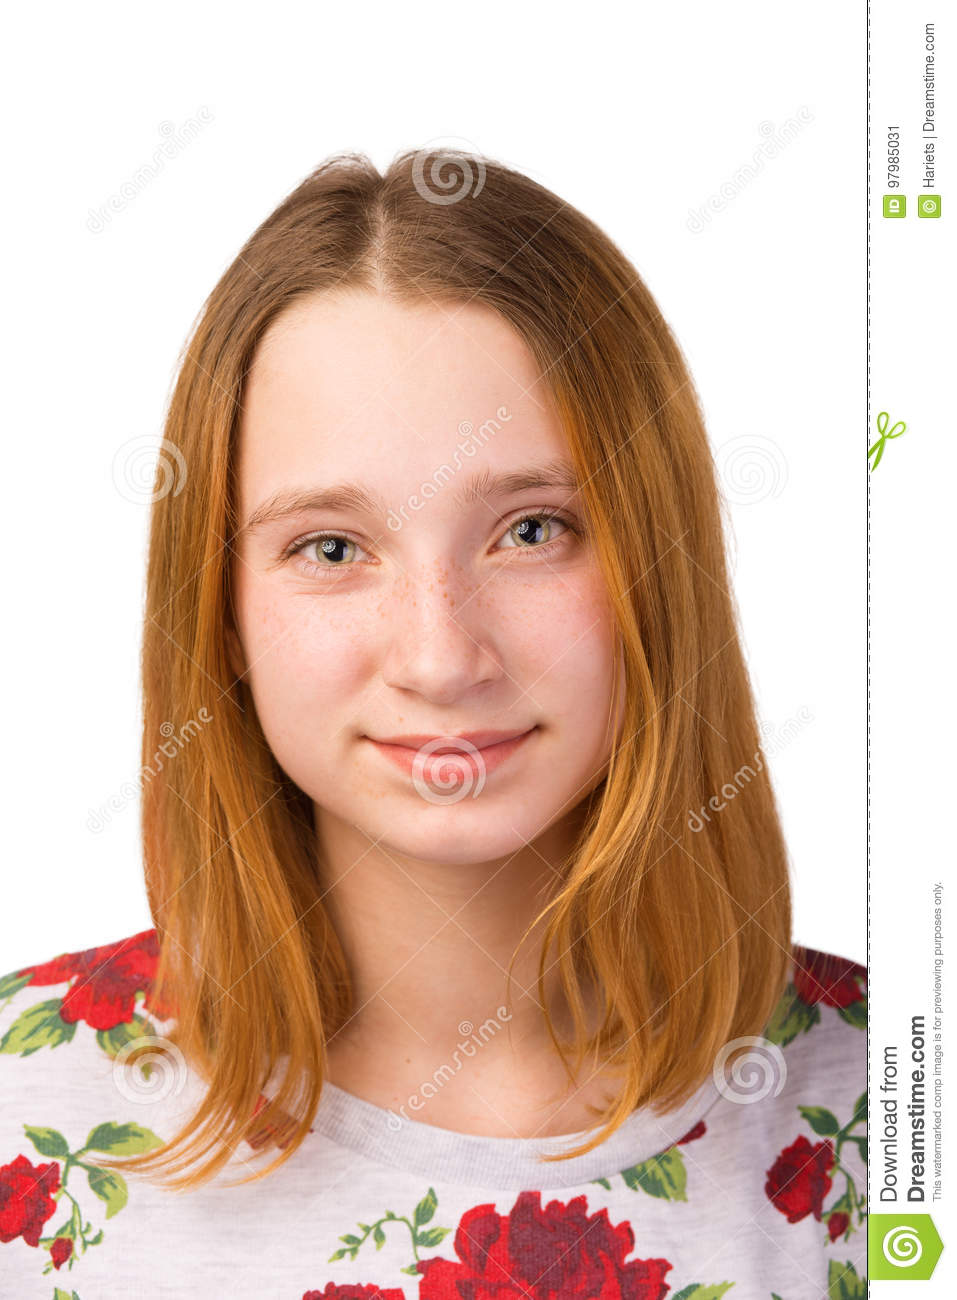 Portrait of a pretty young smiling redhead girl